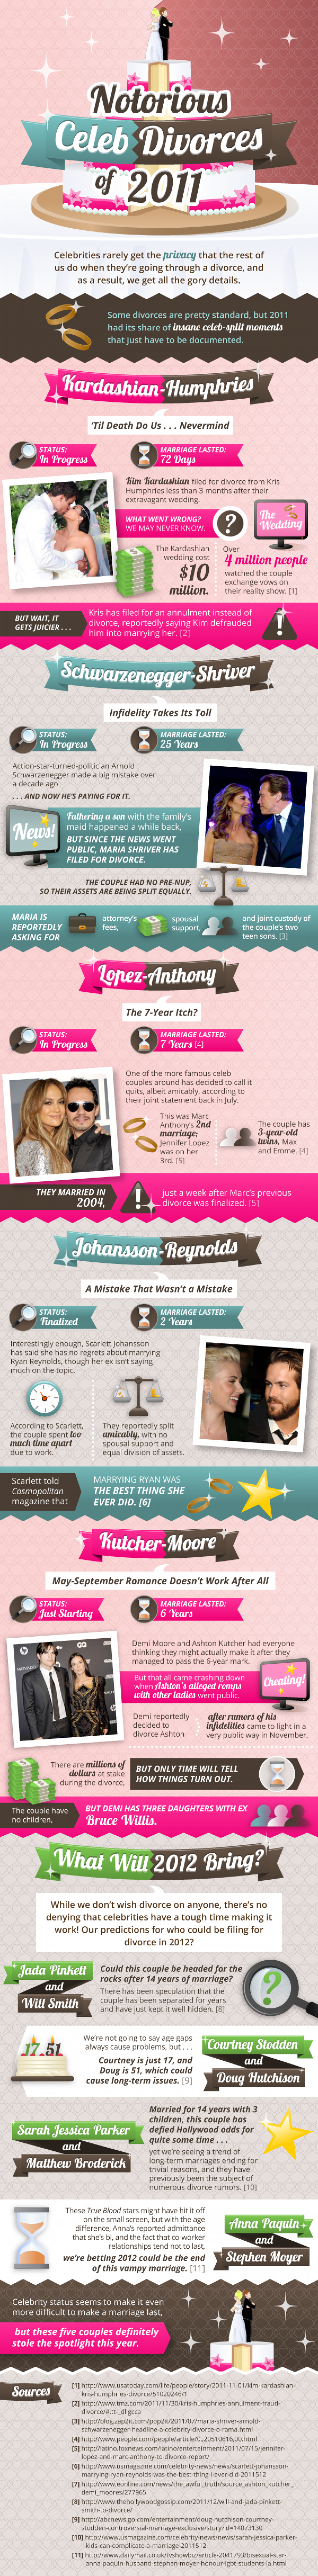 Notorious Celeb Divorces of 2011 Infographic